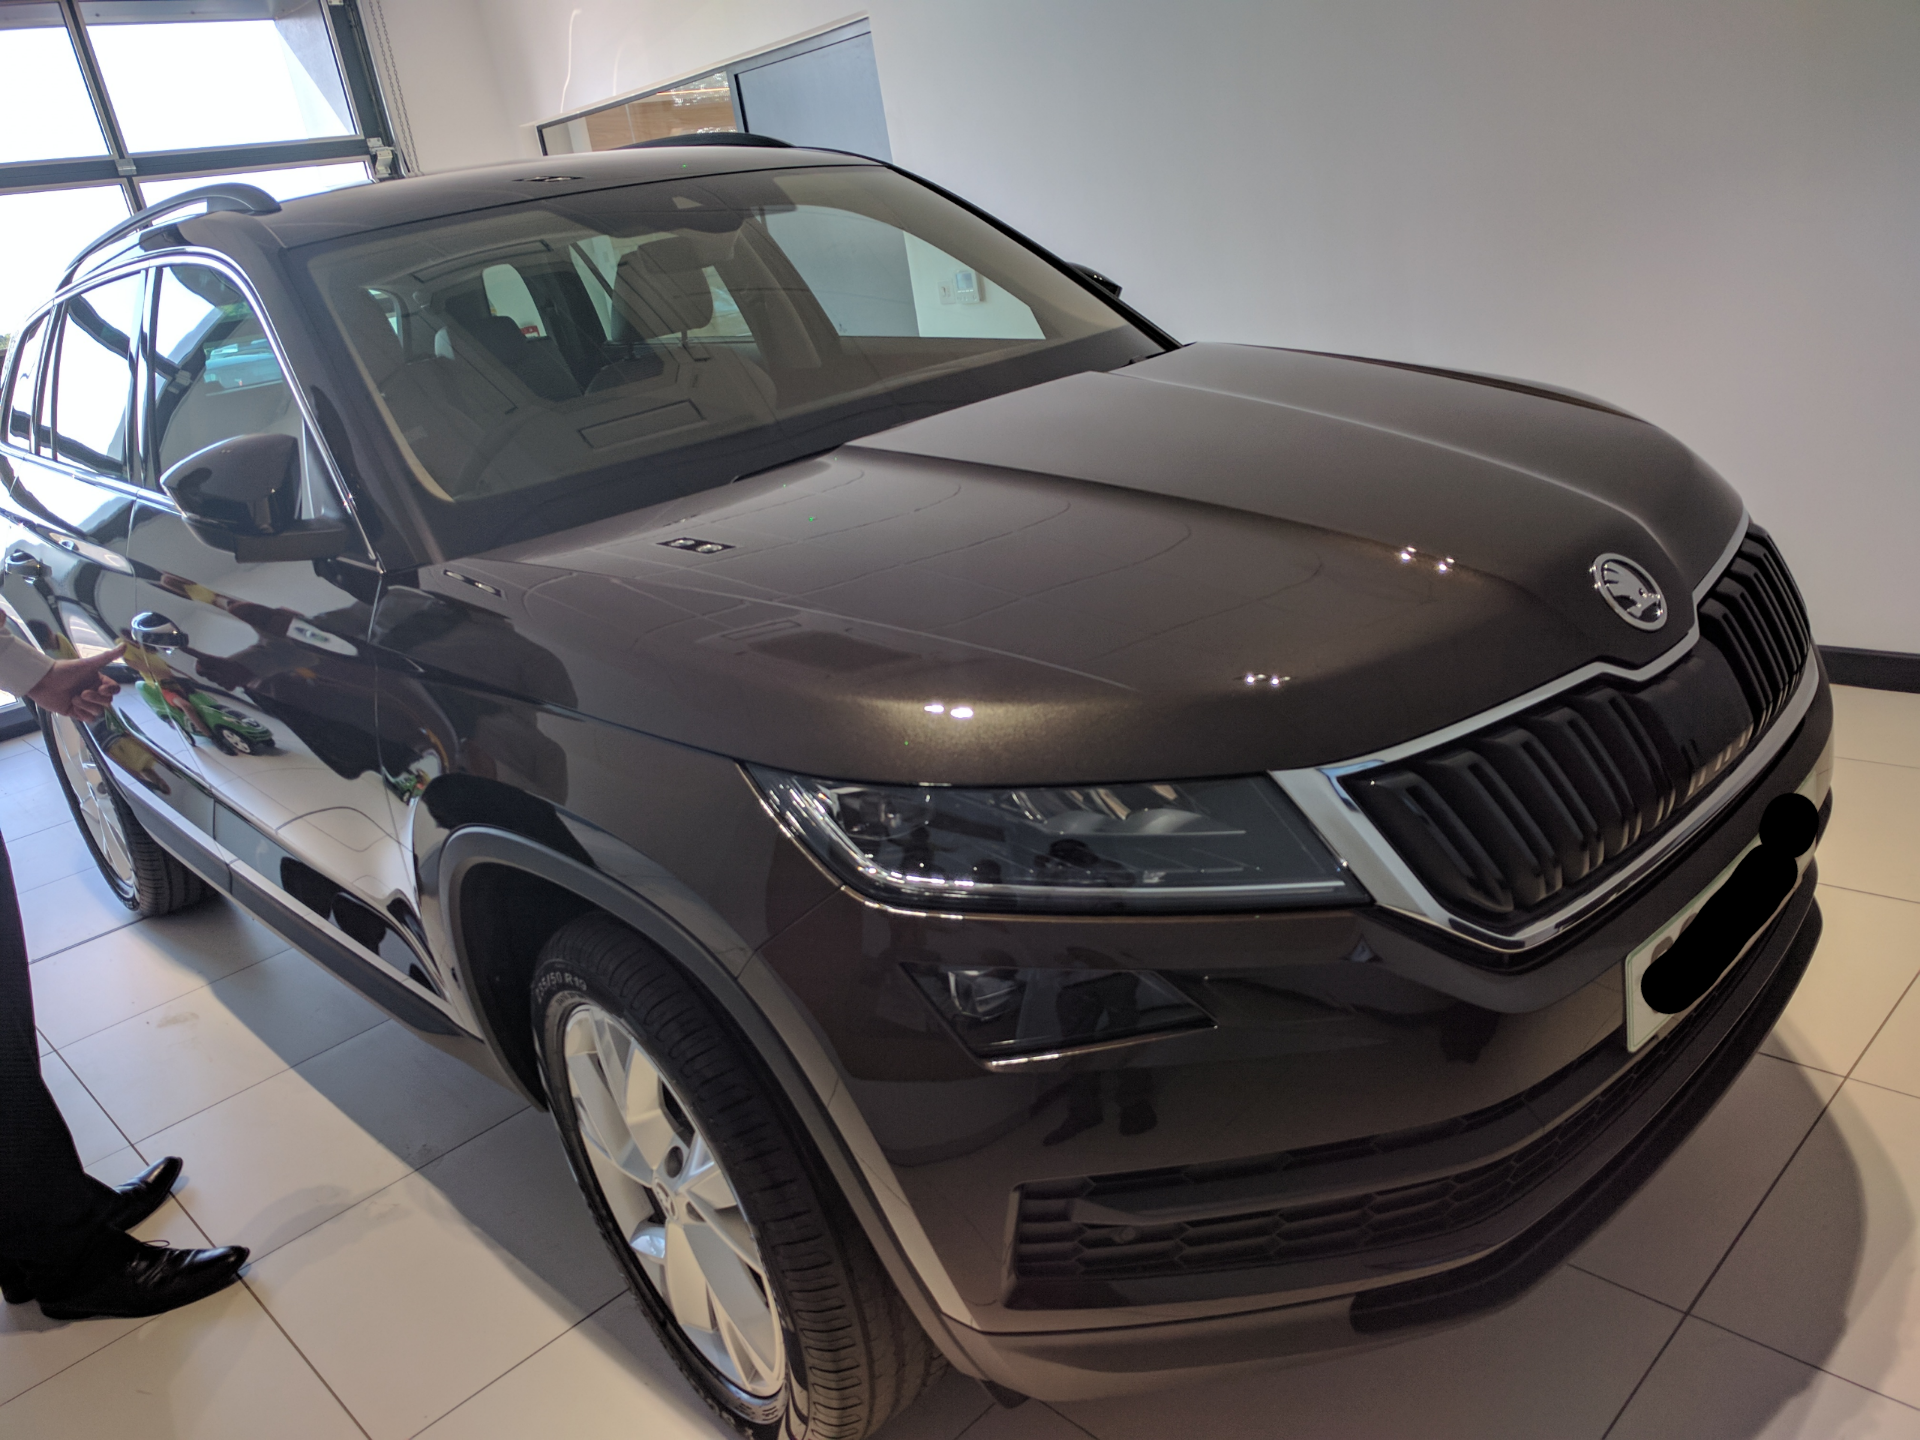 Black Kodiaq >> Possibly the first Kodiaq in Magnetic Brown metallic ...